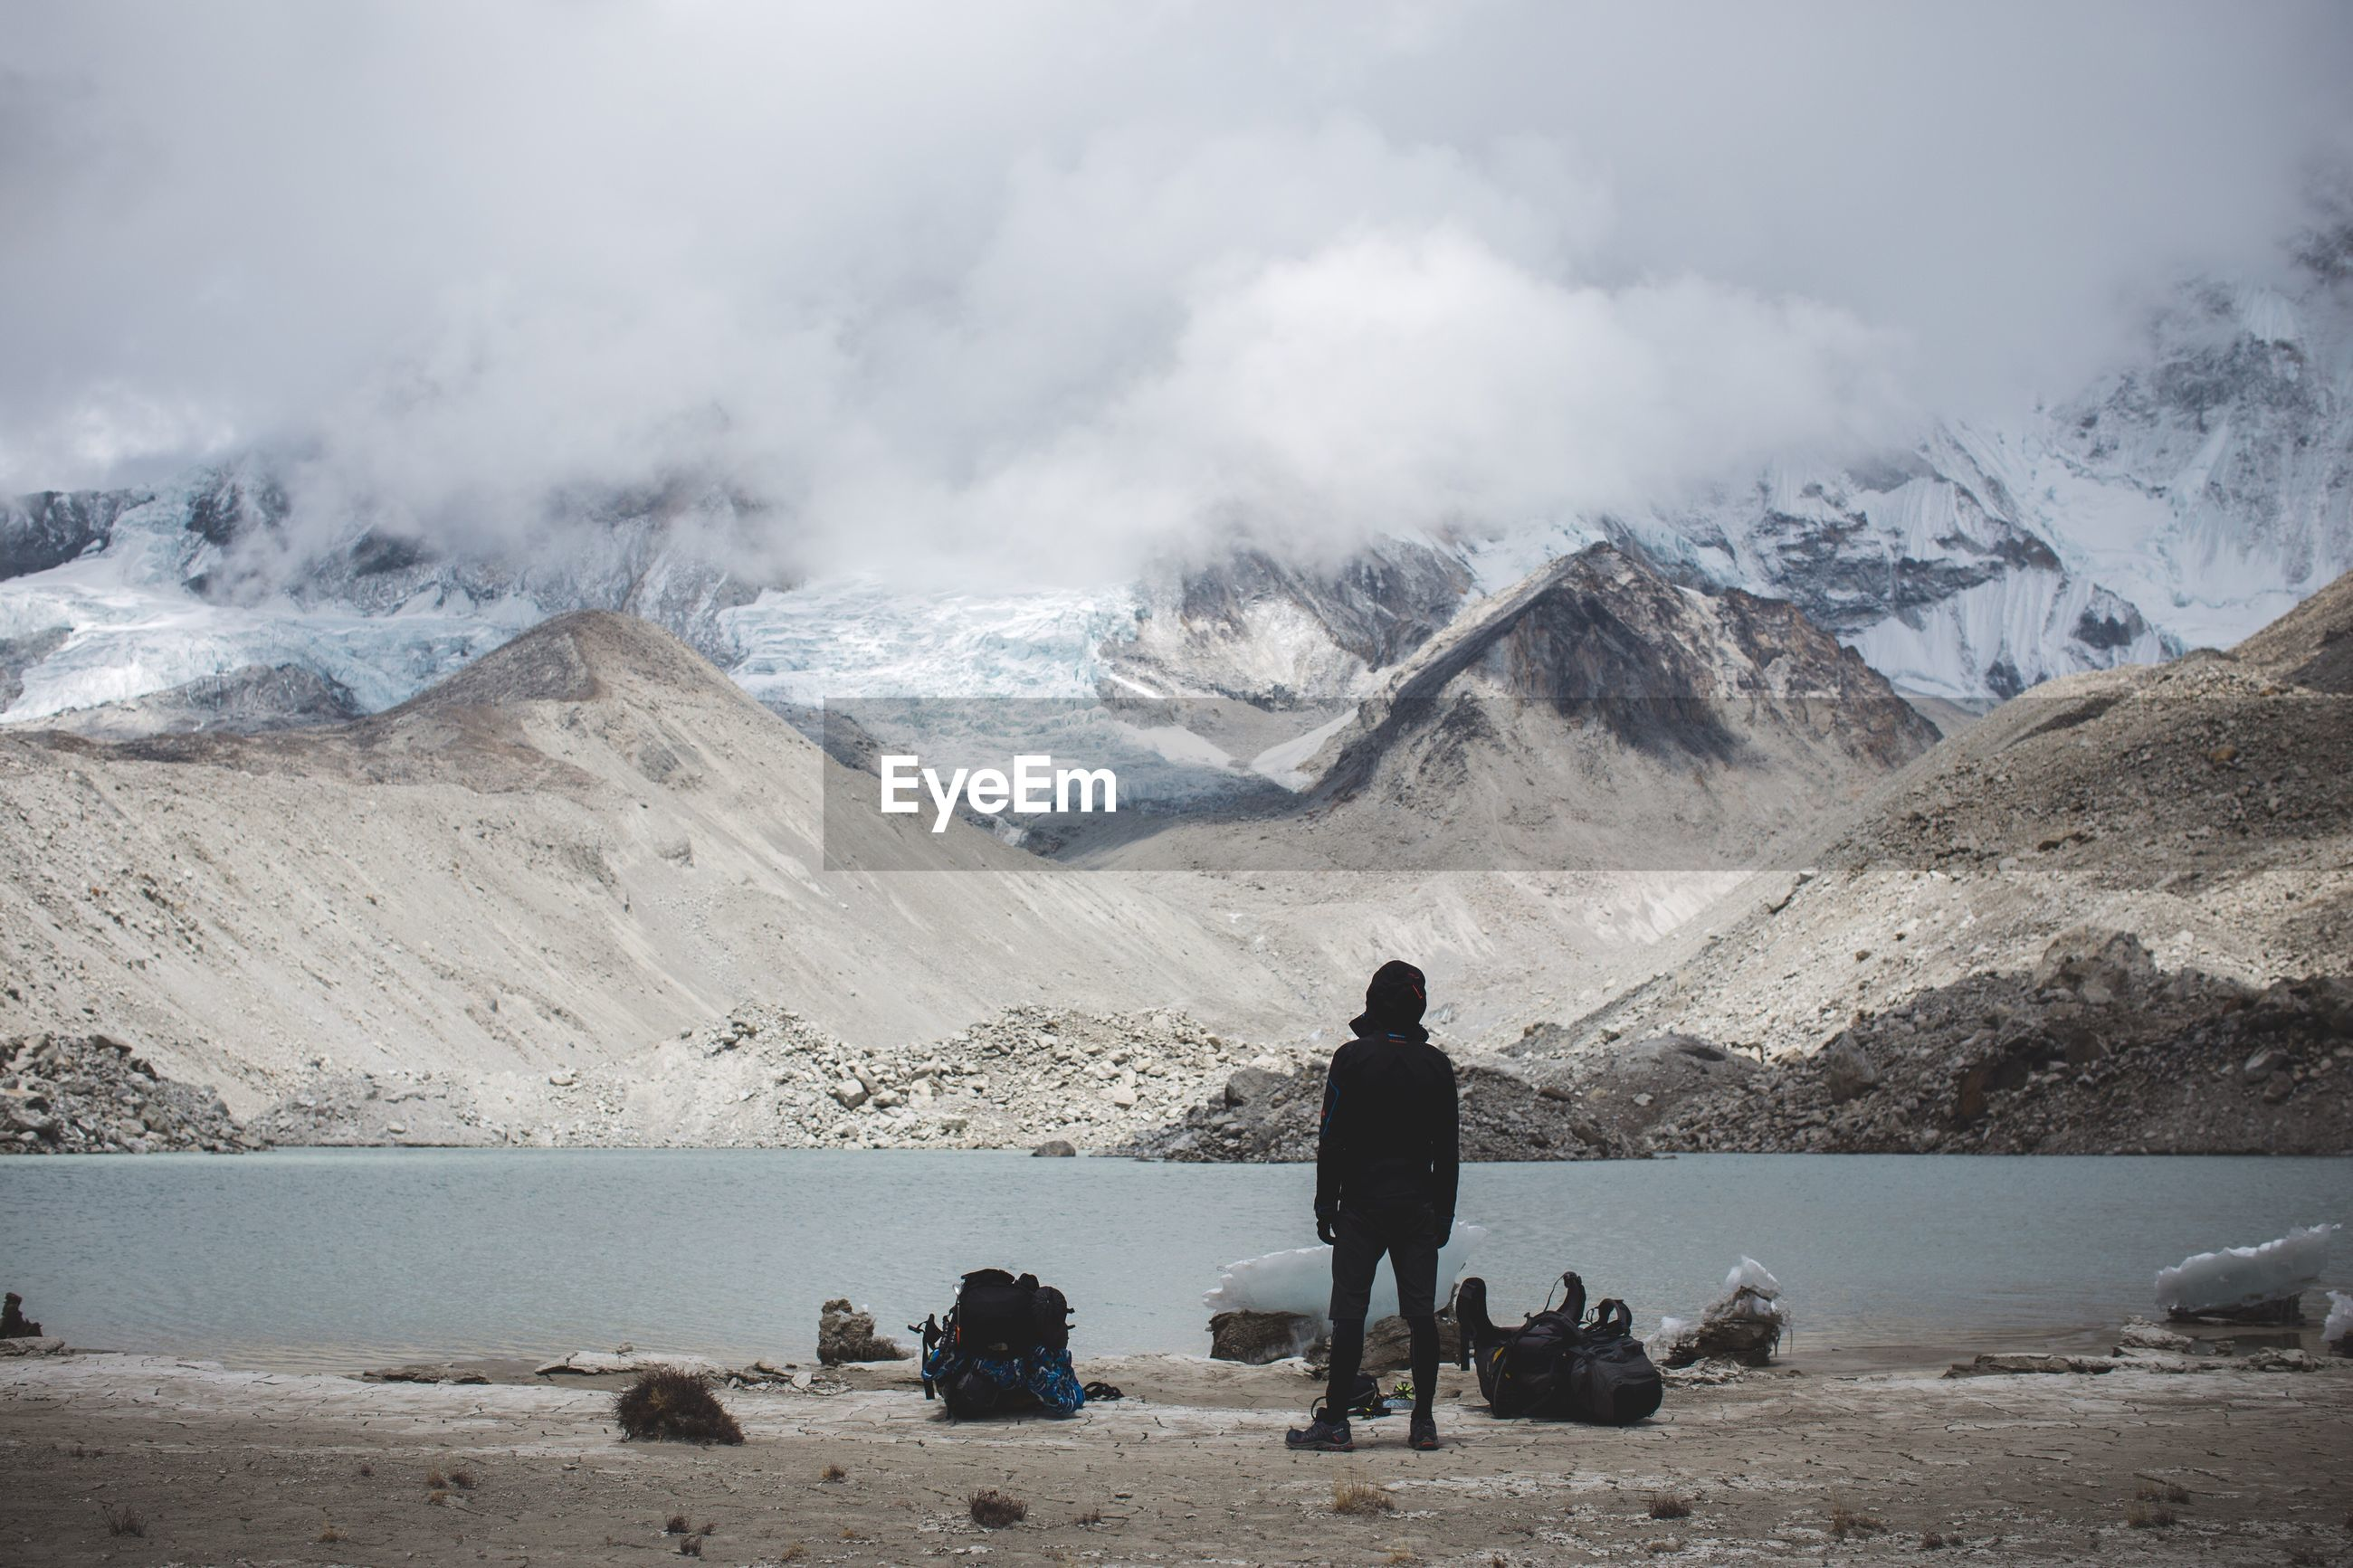 Rear view of person standing by river against mountain